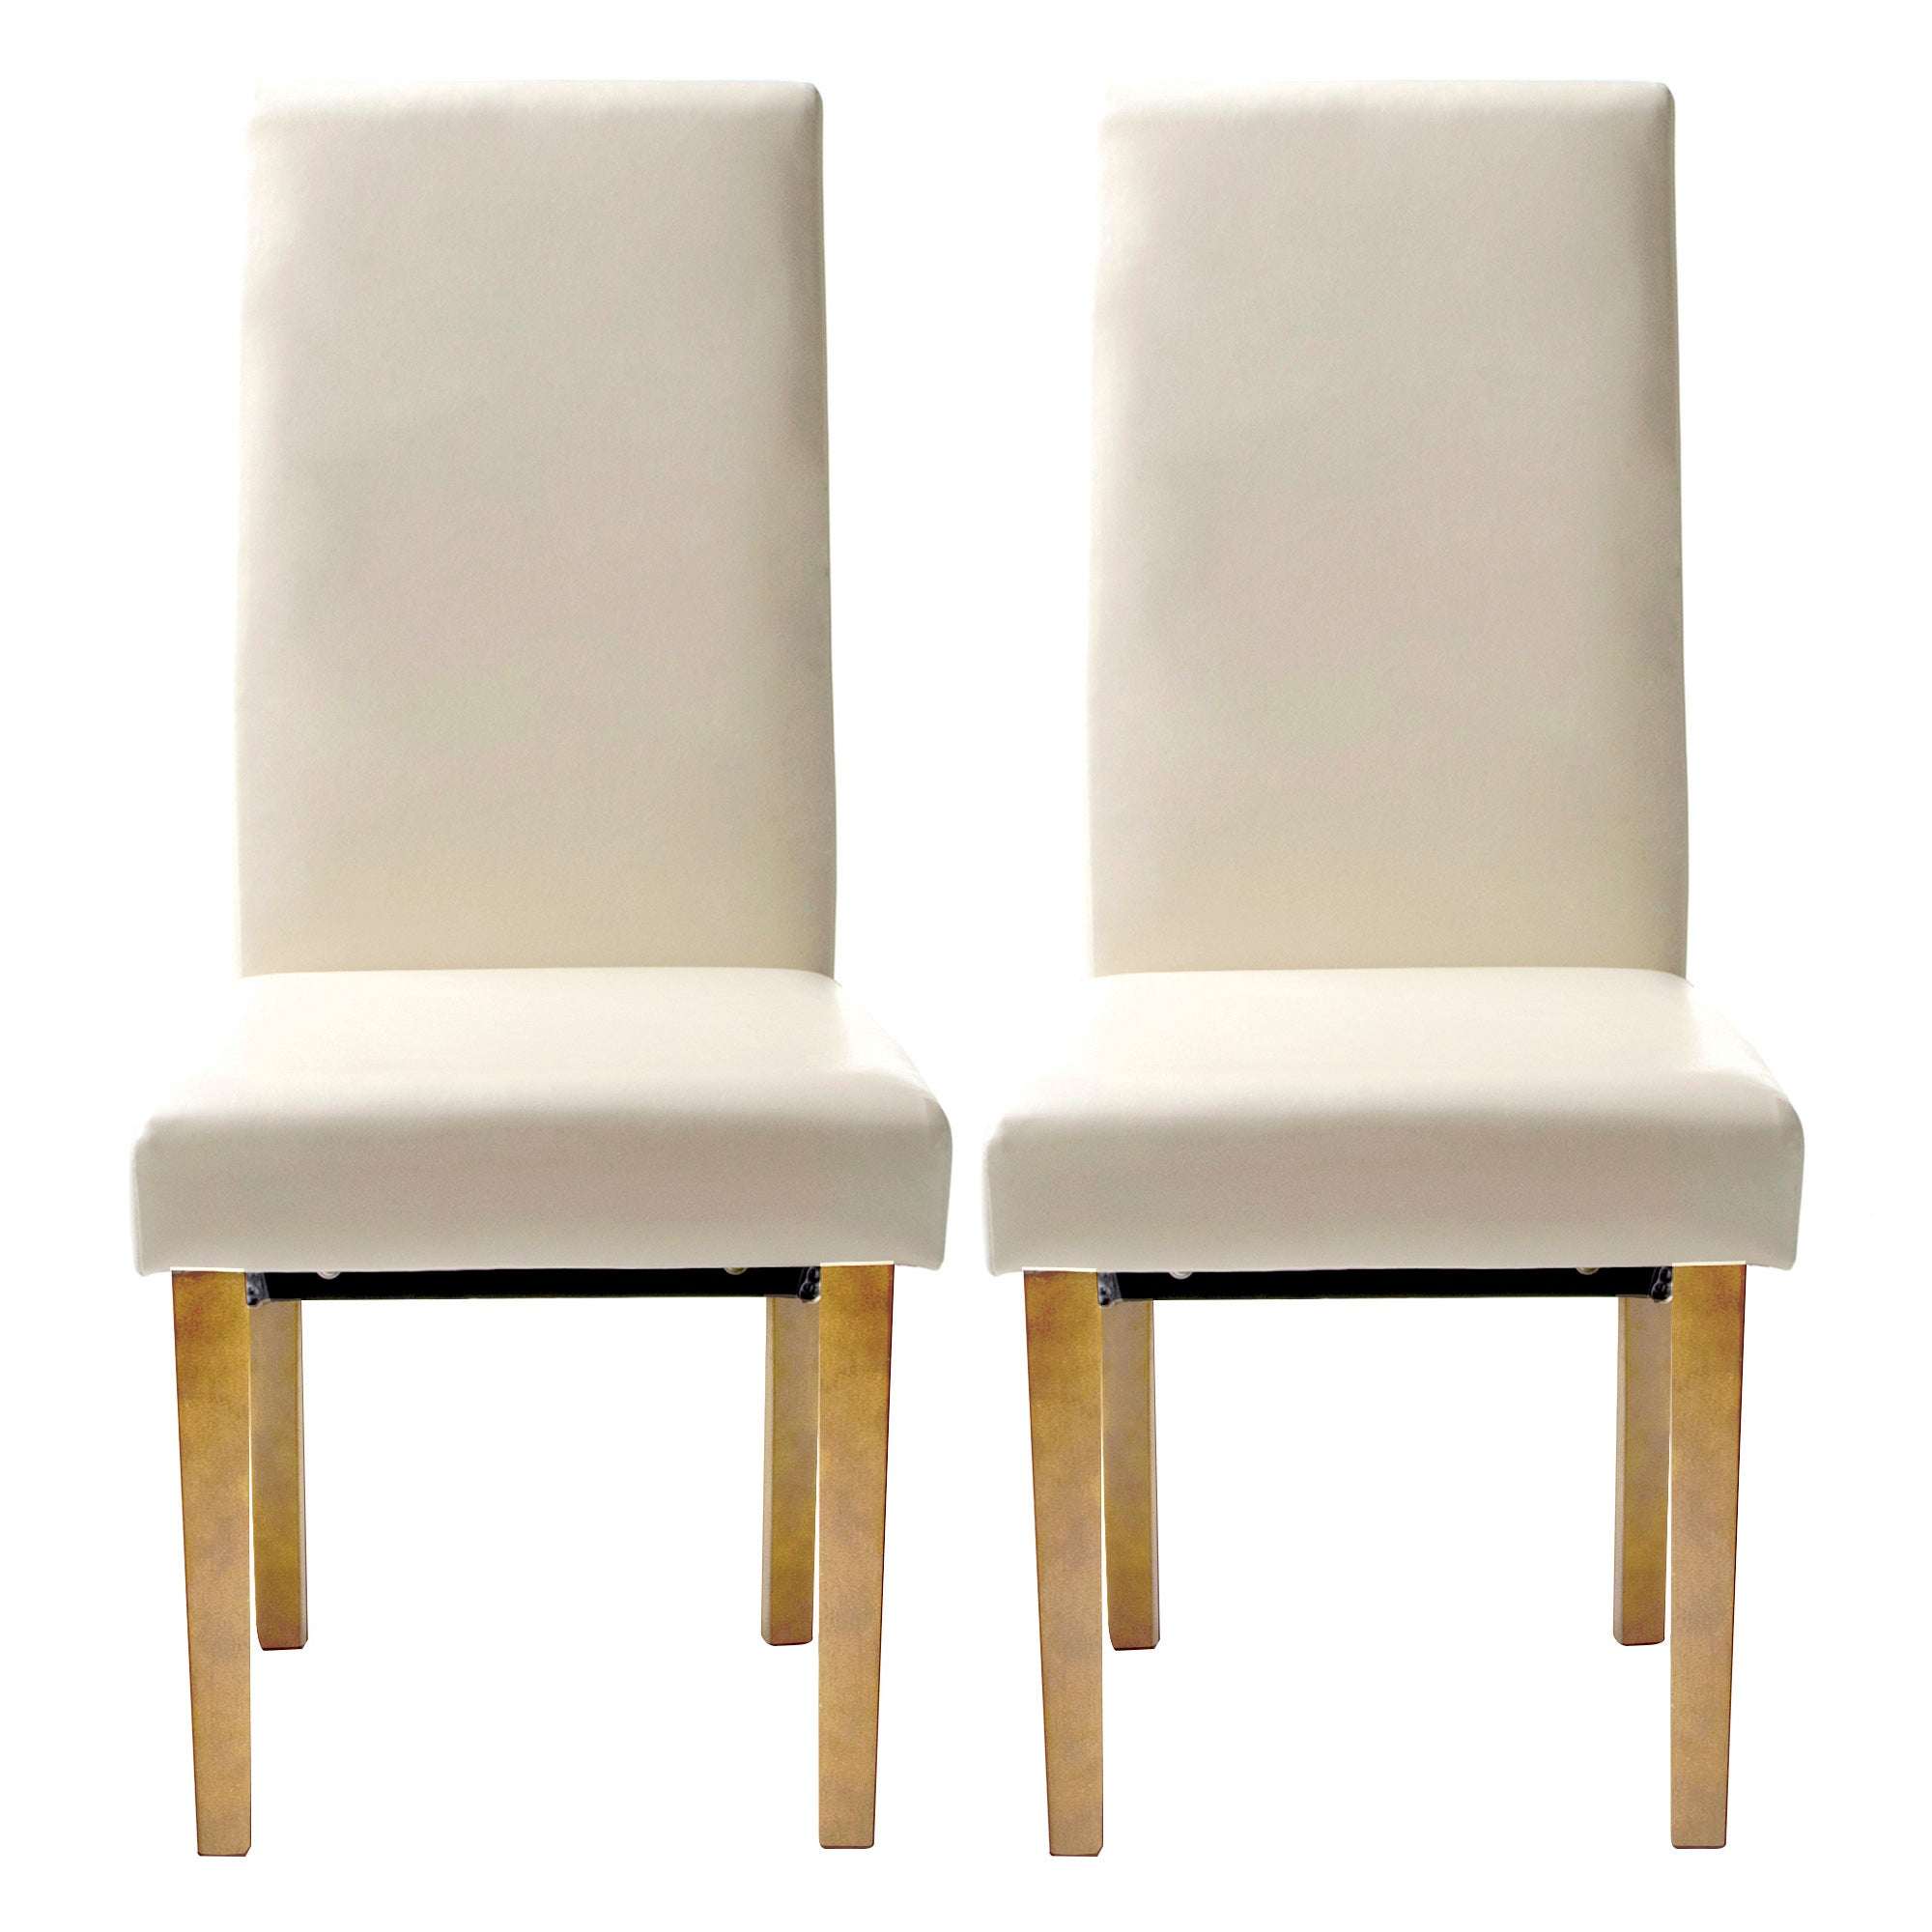 Hunston Cream Faux Leather Pair of Extra Large Dining Chairs Dunelm